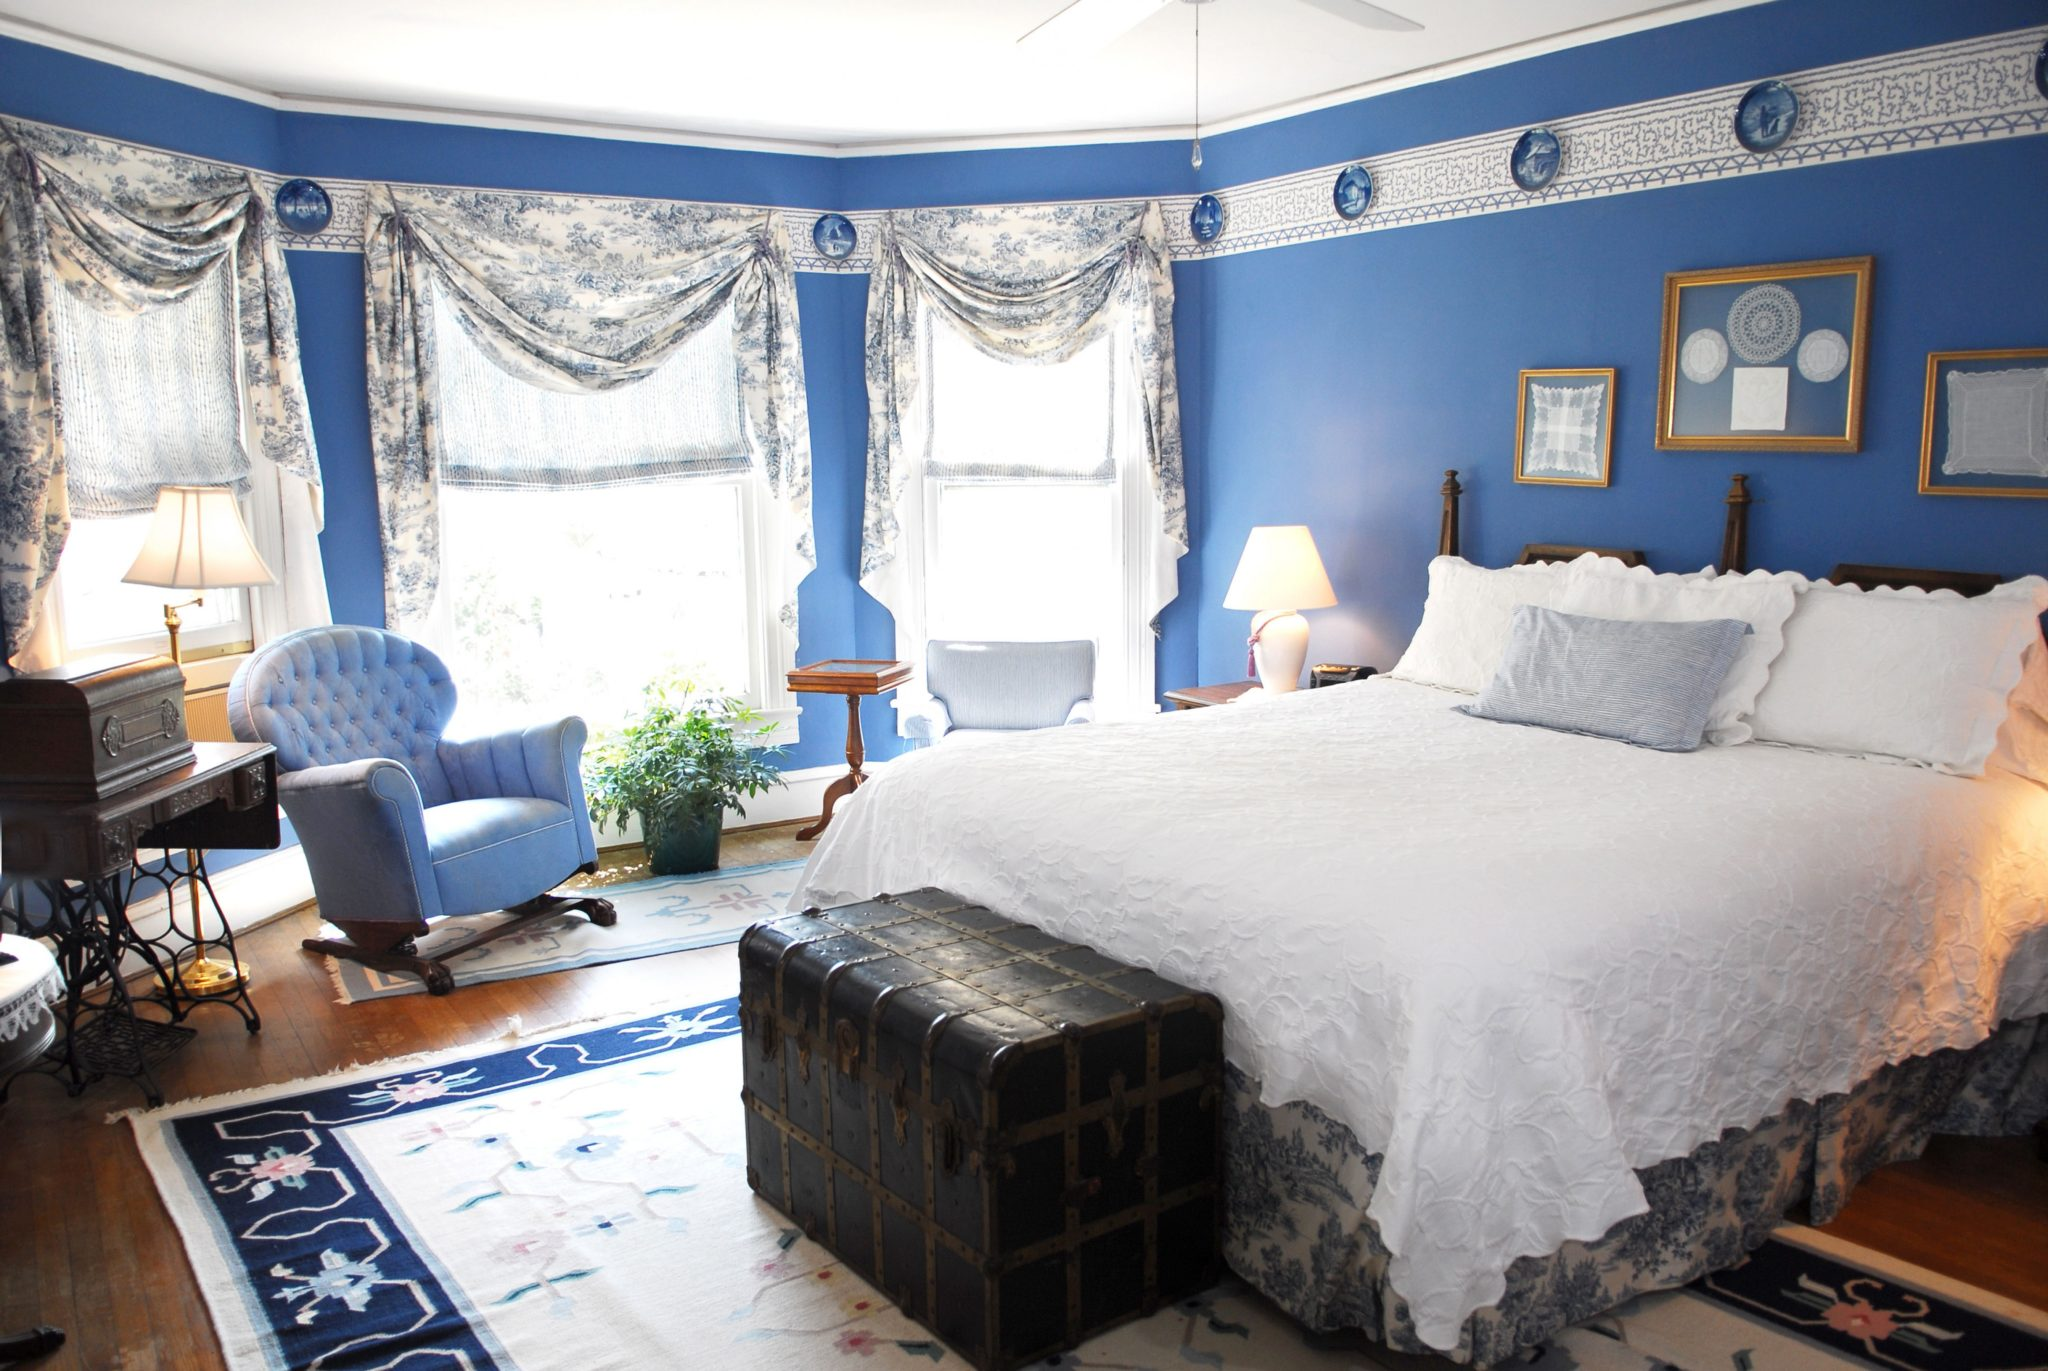 Blue bedroom with a cozy atmosphere